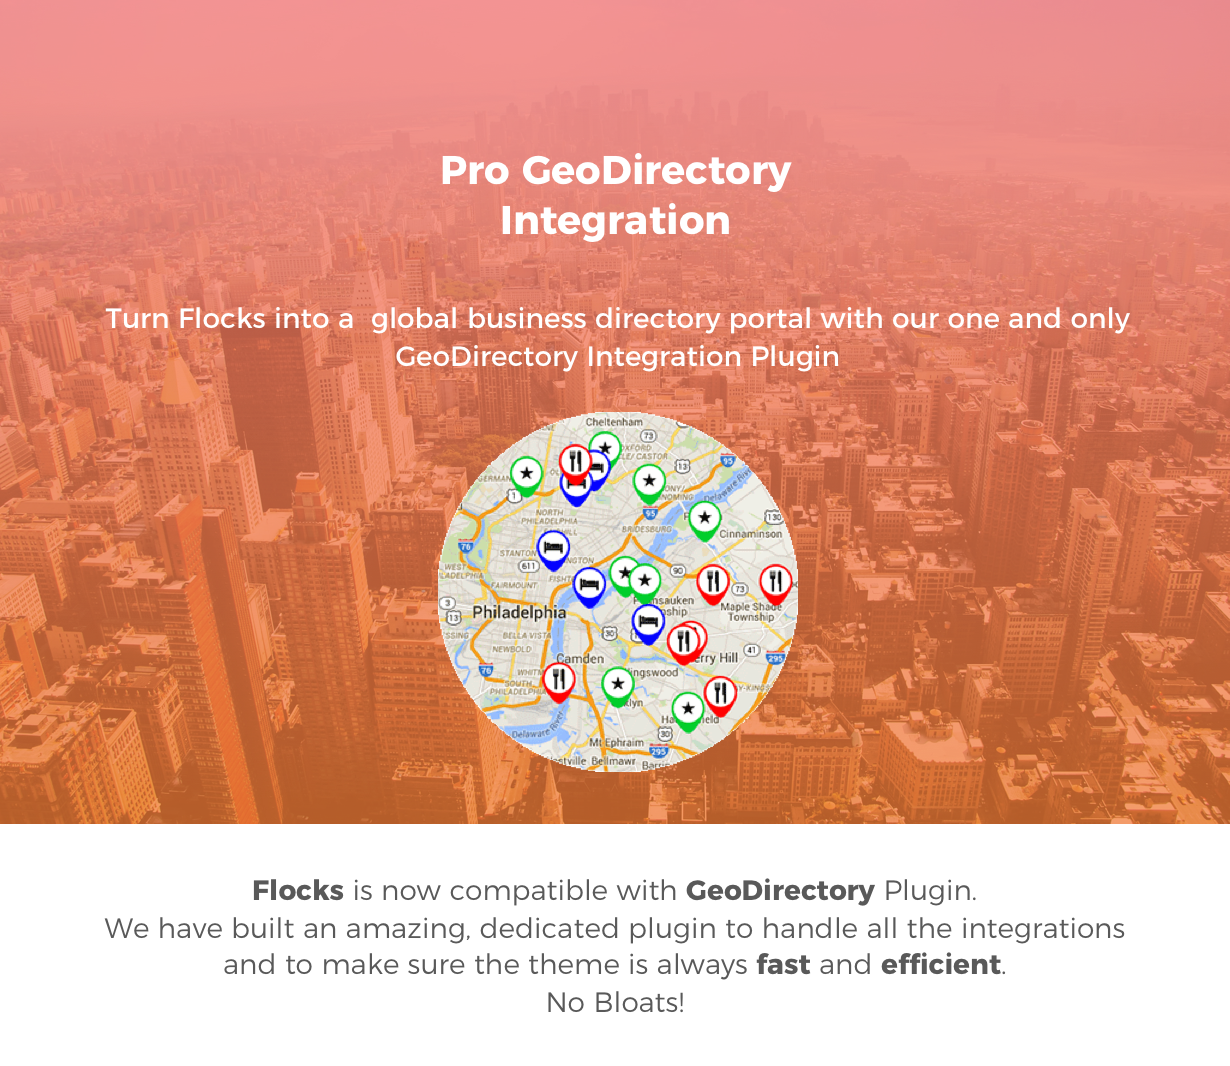 Geodirectory Integration